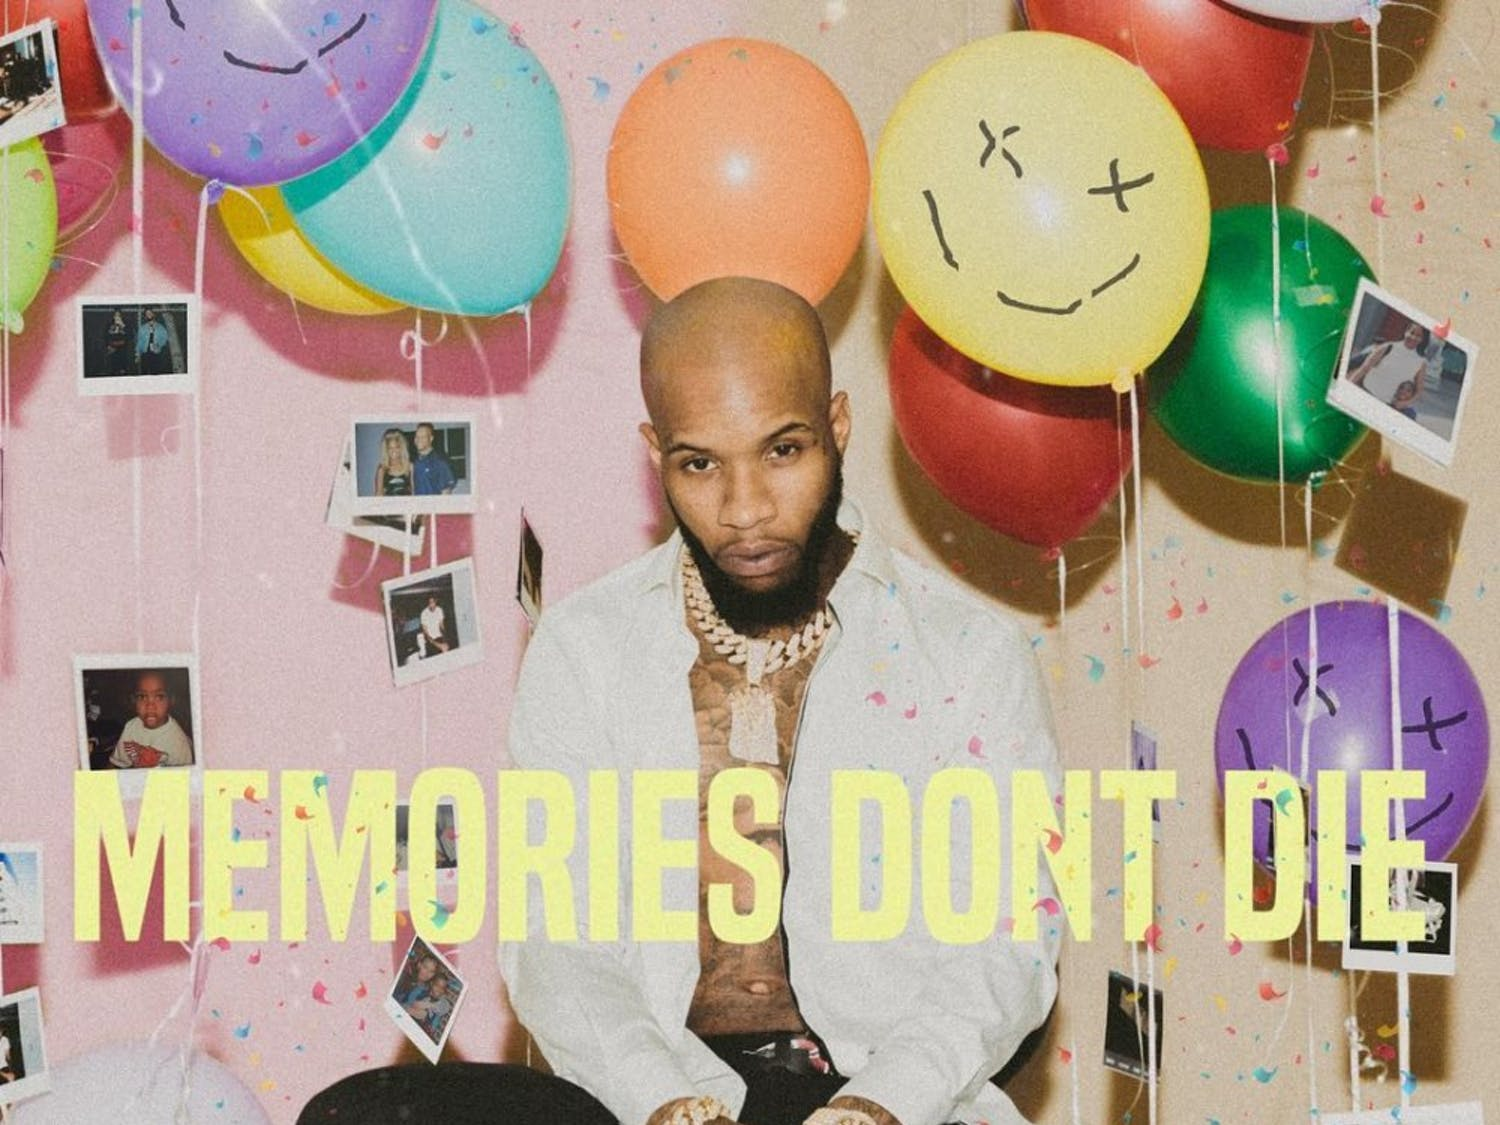 With this record,Tory Lanez lacks the originality to hold anyone's attention long enough for mainstream success.